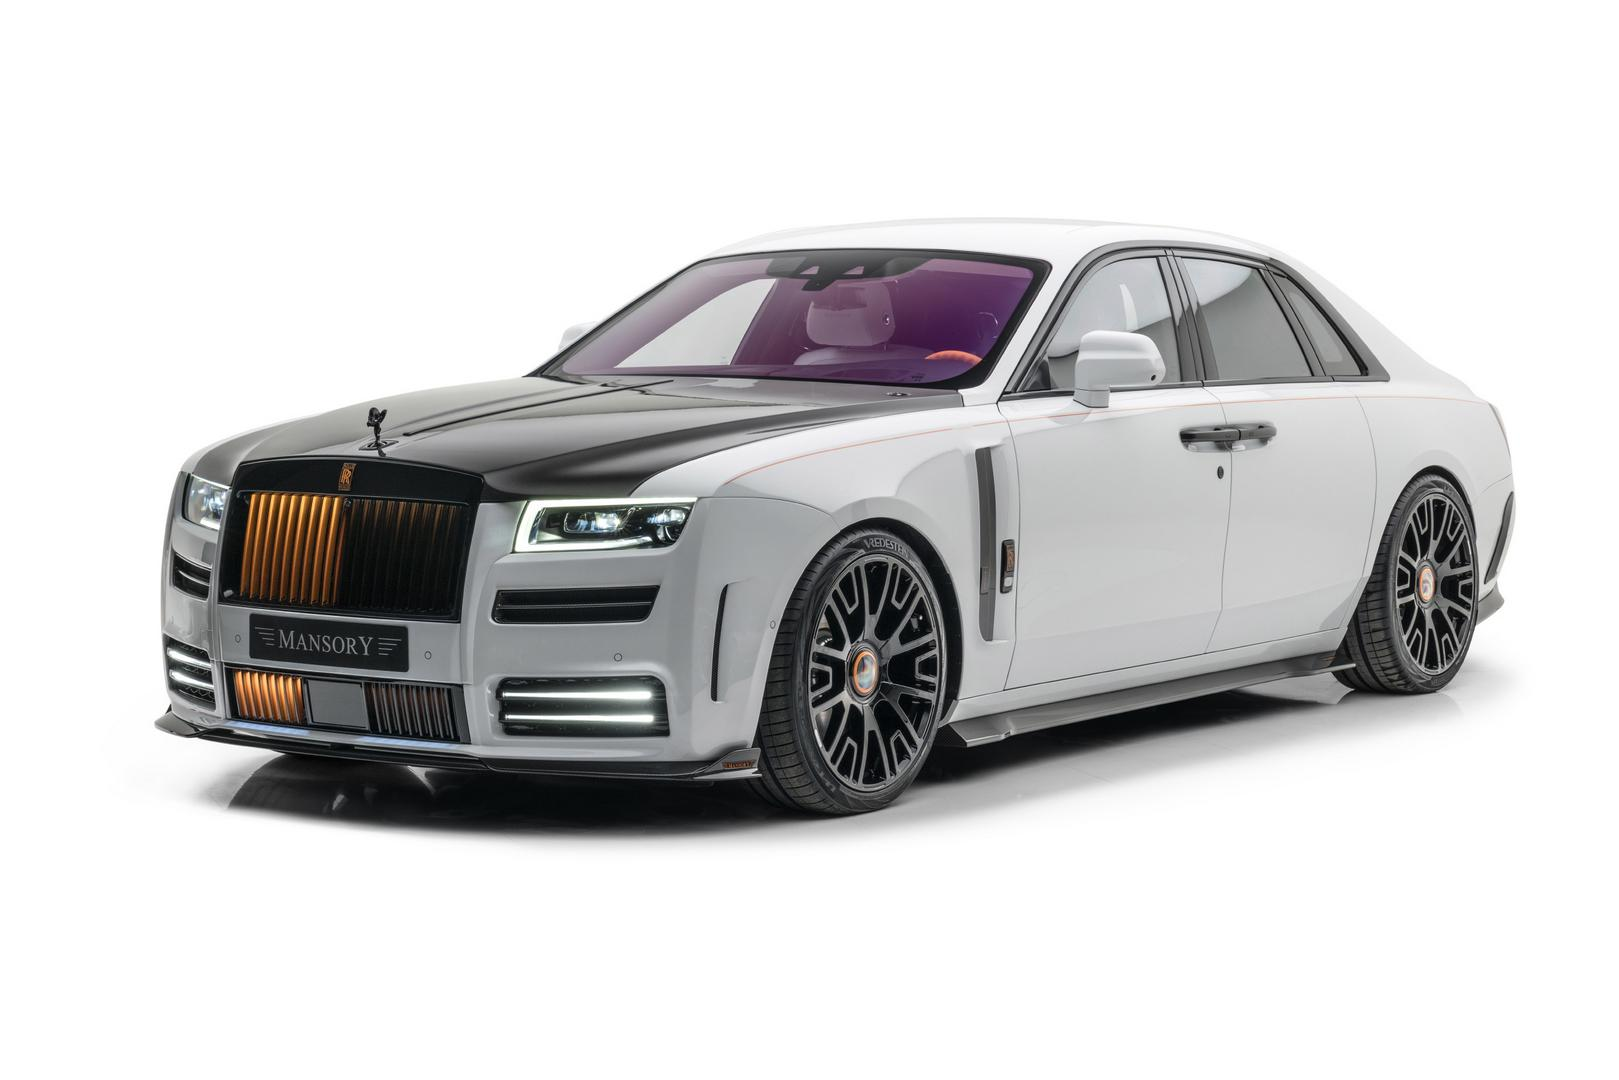 Mansory Shows Off their New Rolls-Royce Ghost Styling Kit – 720hp Now